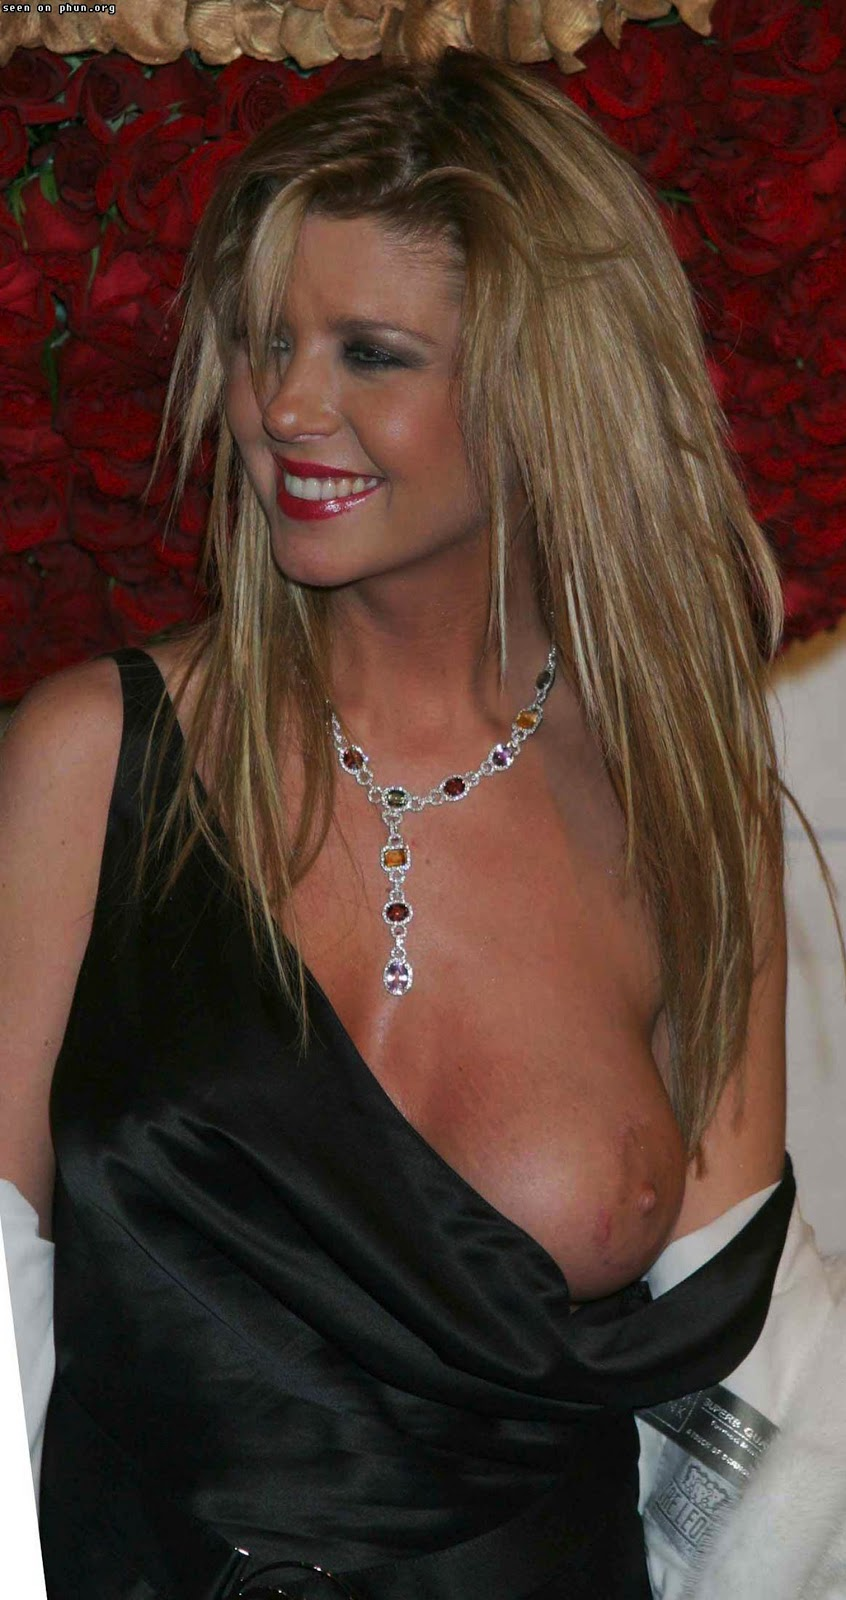 Tara reid nude celebrity pictures